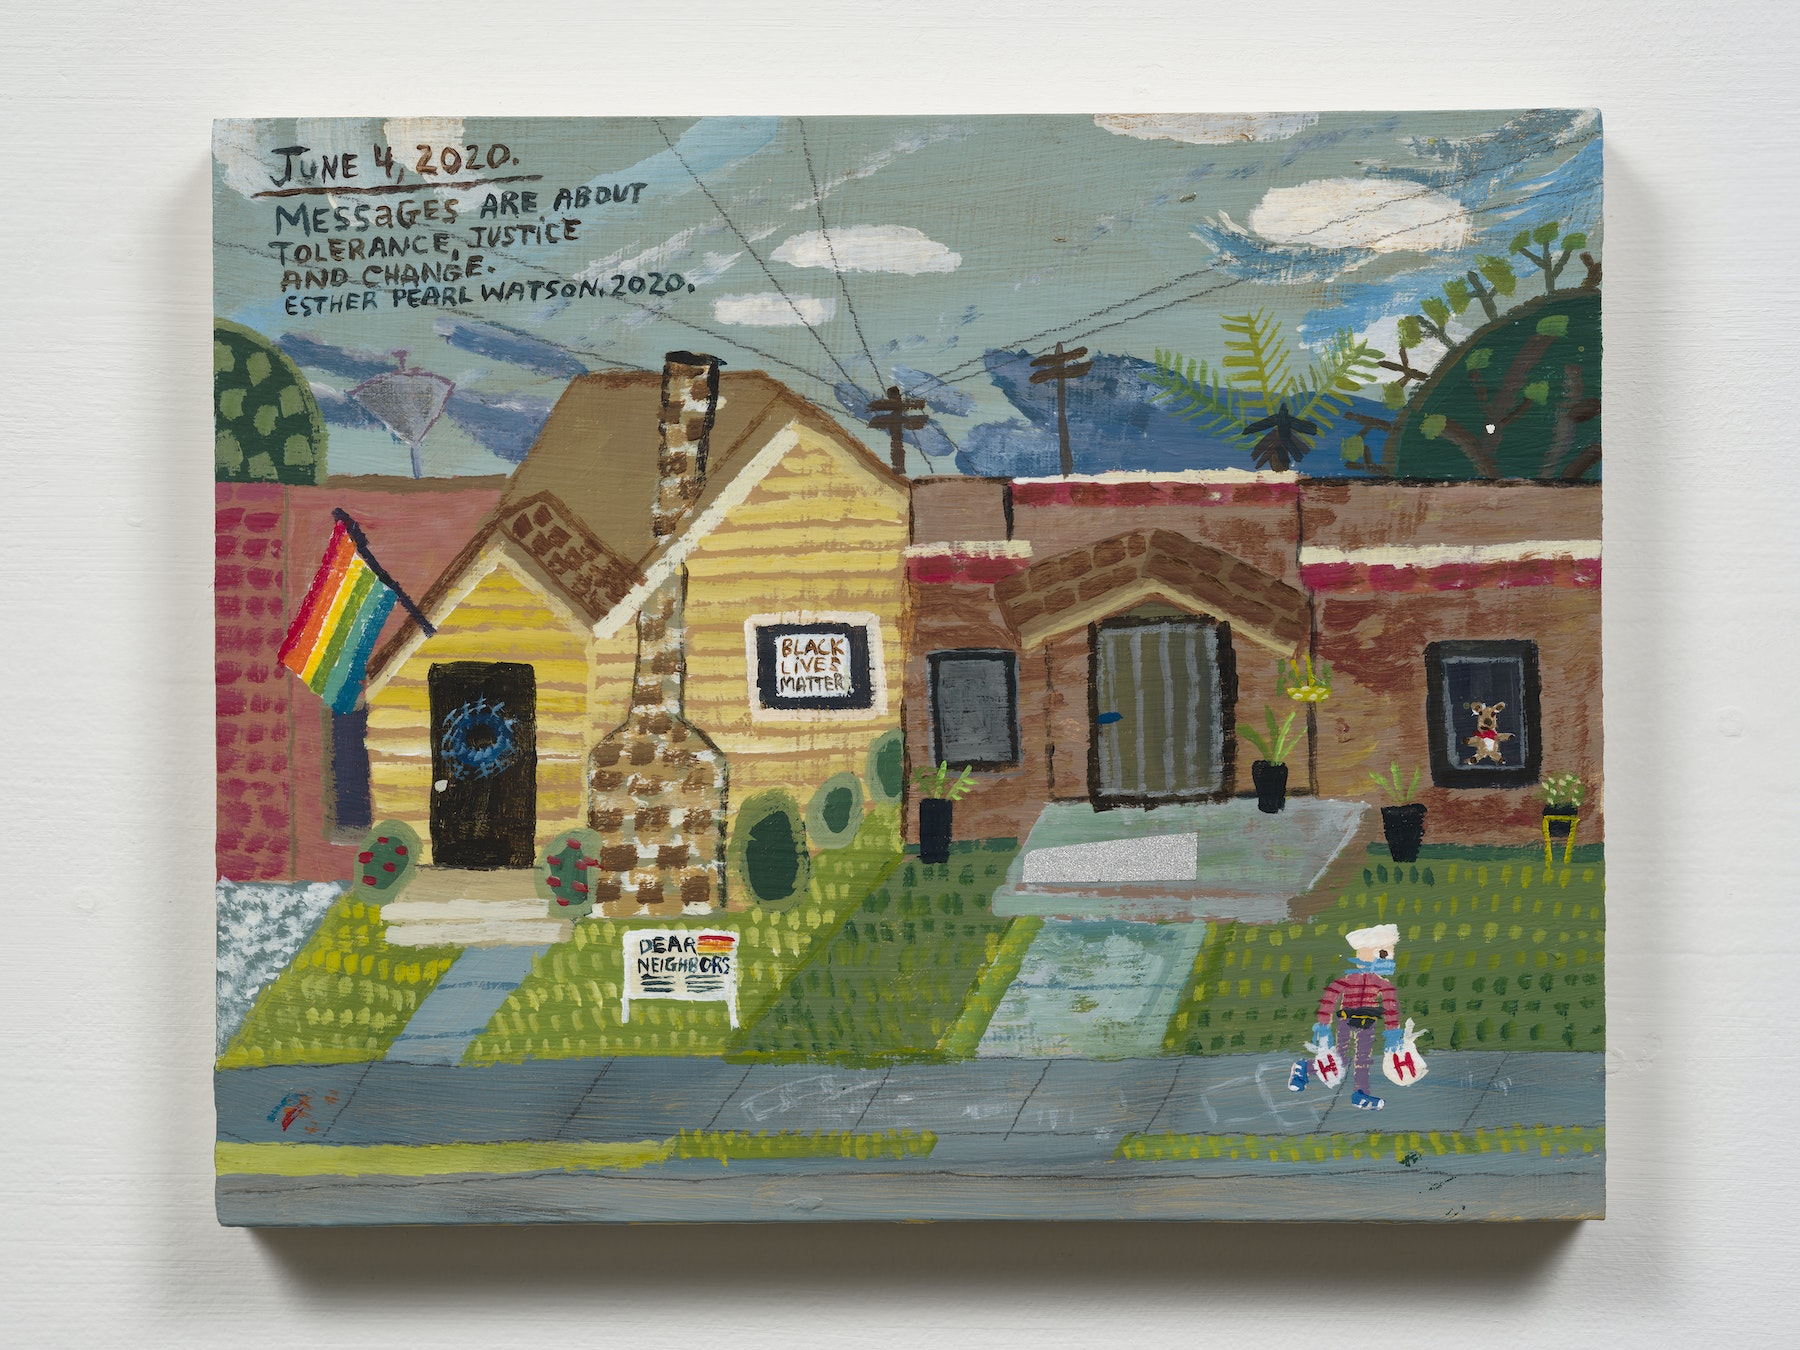 """Esther Pearl Watson """"June 4, Tolerance, Injustice and Change,"""" 2020 Acrylic with pencil on panel 8 x 10"""" [HxW] (20.32 x 25.4 cm) Inventory #EPW293 Courtesy of the artist and Vielmetter Los Angeles Photo credit: Jeff Mclane"""